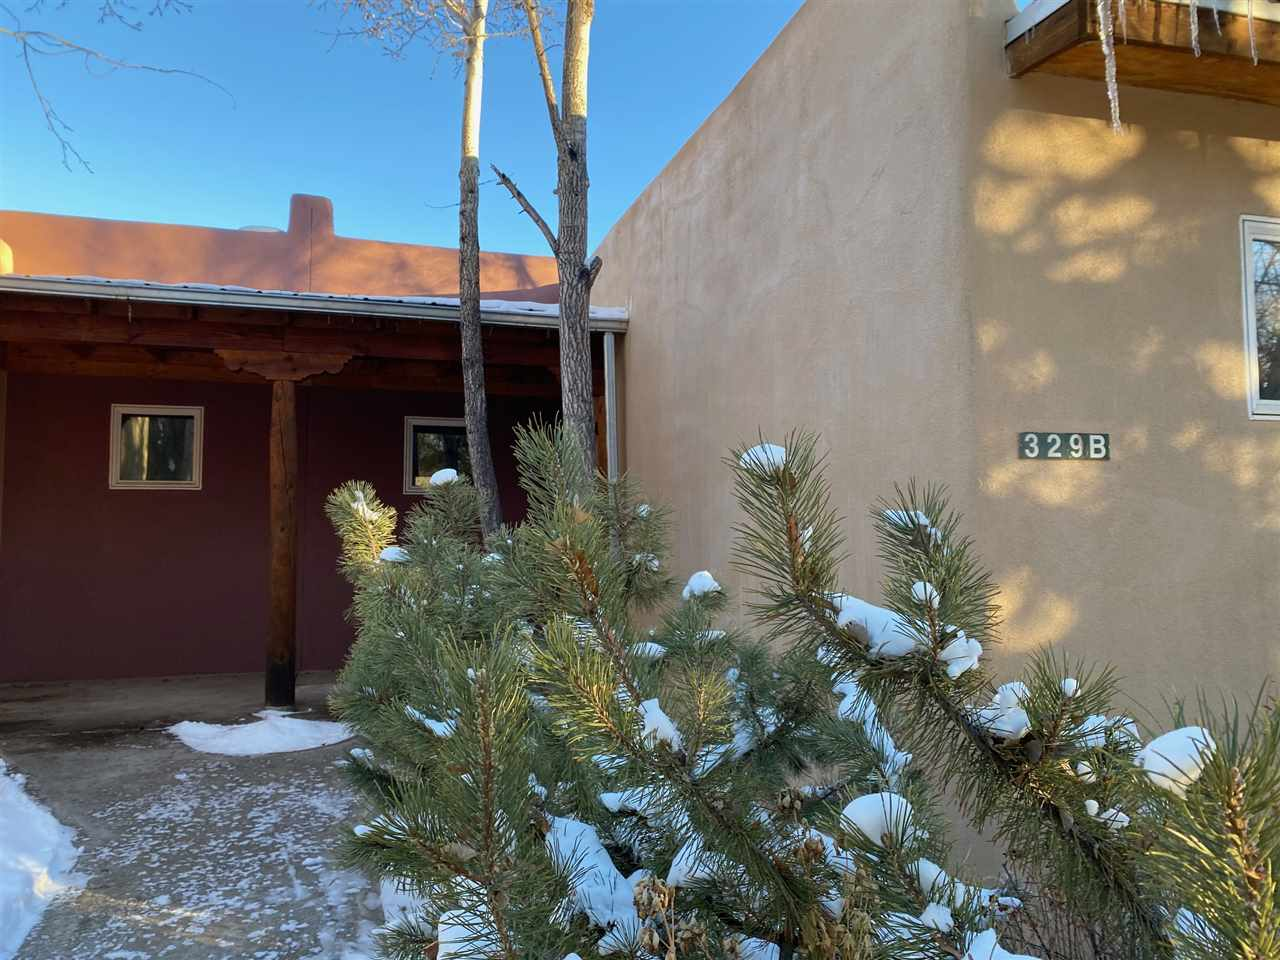 329B Randall Lane, Taos, NM 87571